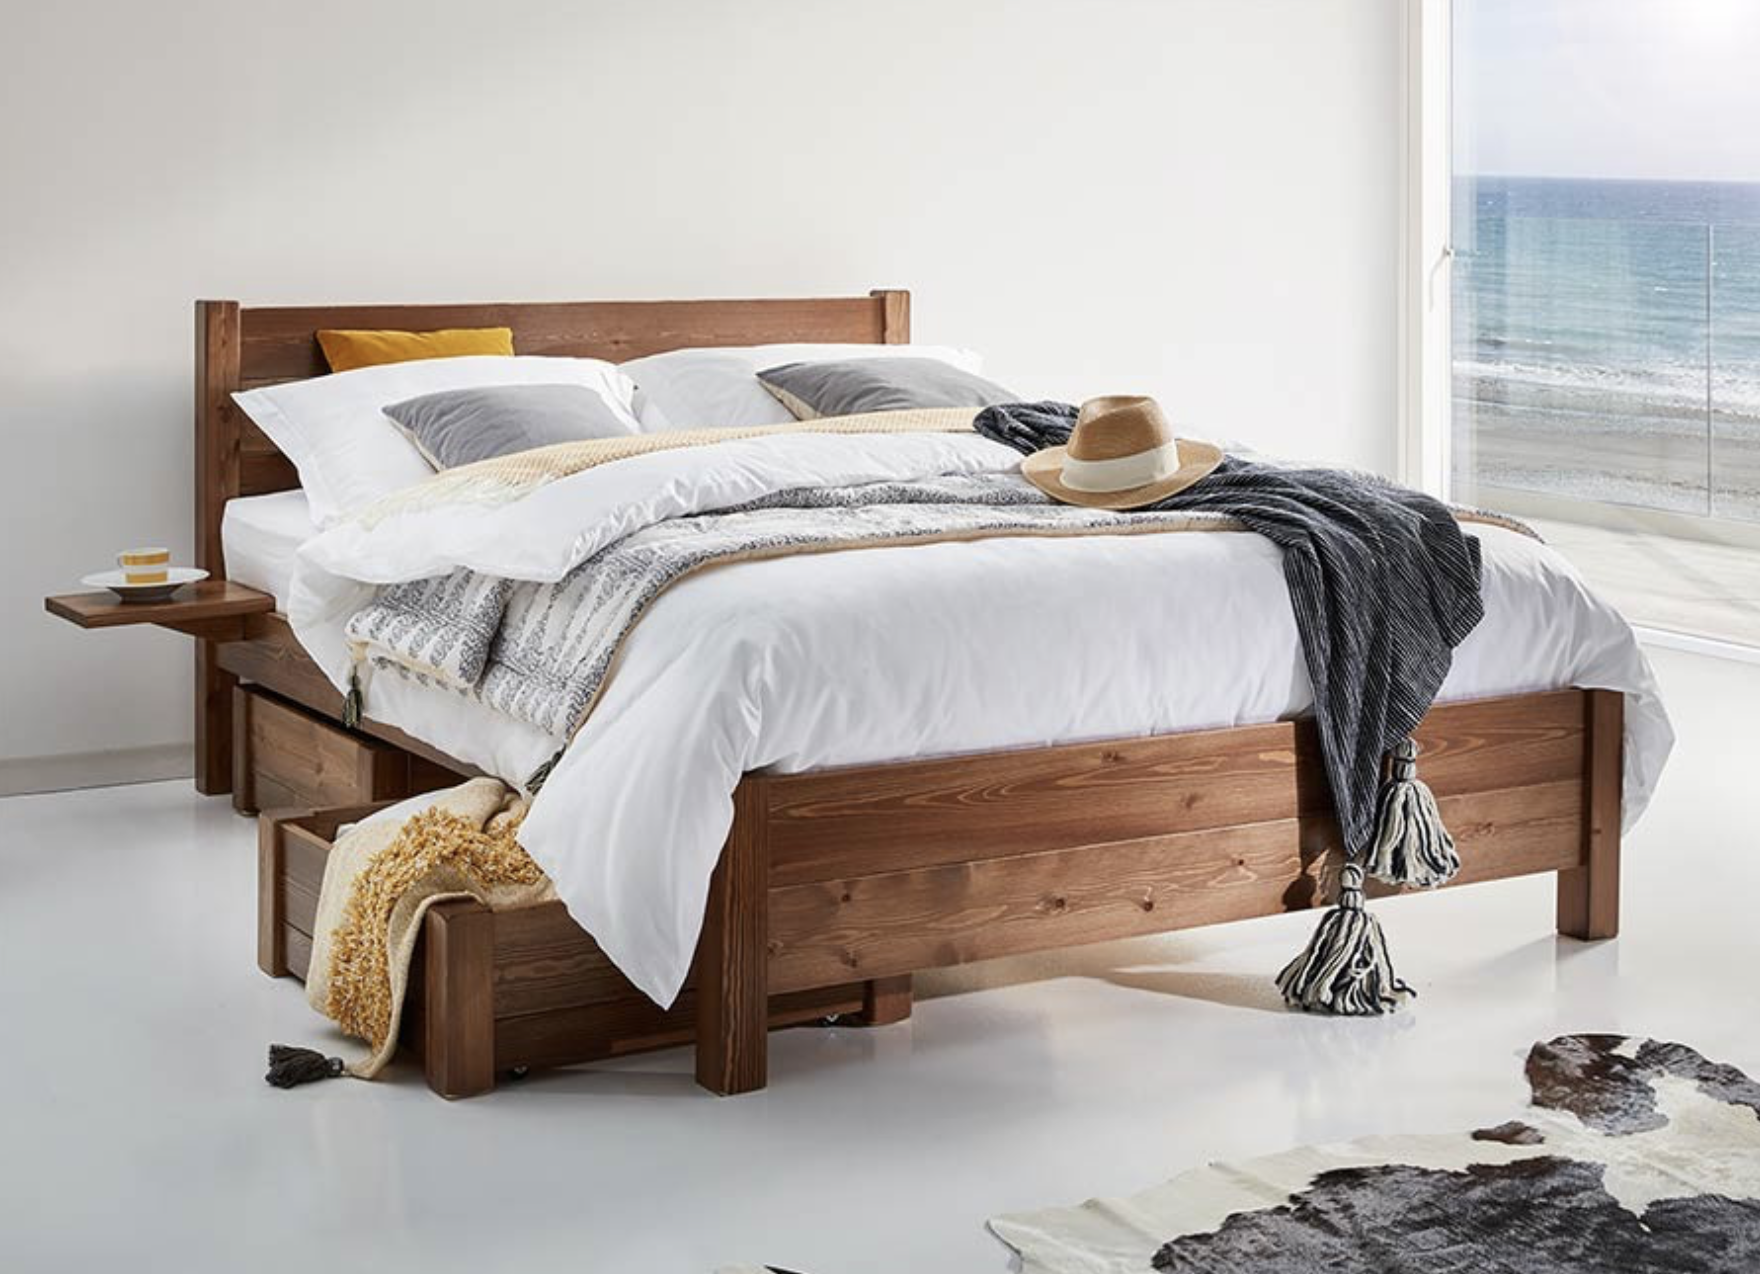 simple wood bed frame, Oxford bed from Get Laid Beds, £654 for kingsize